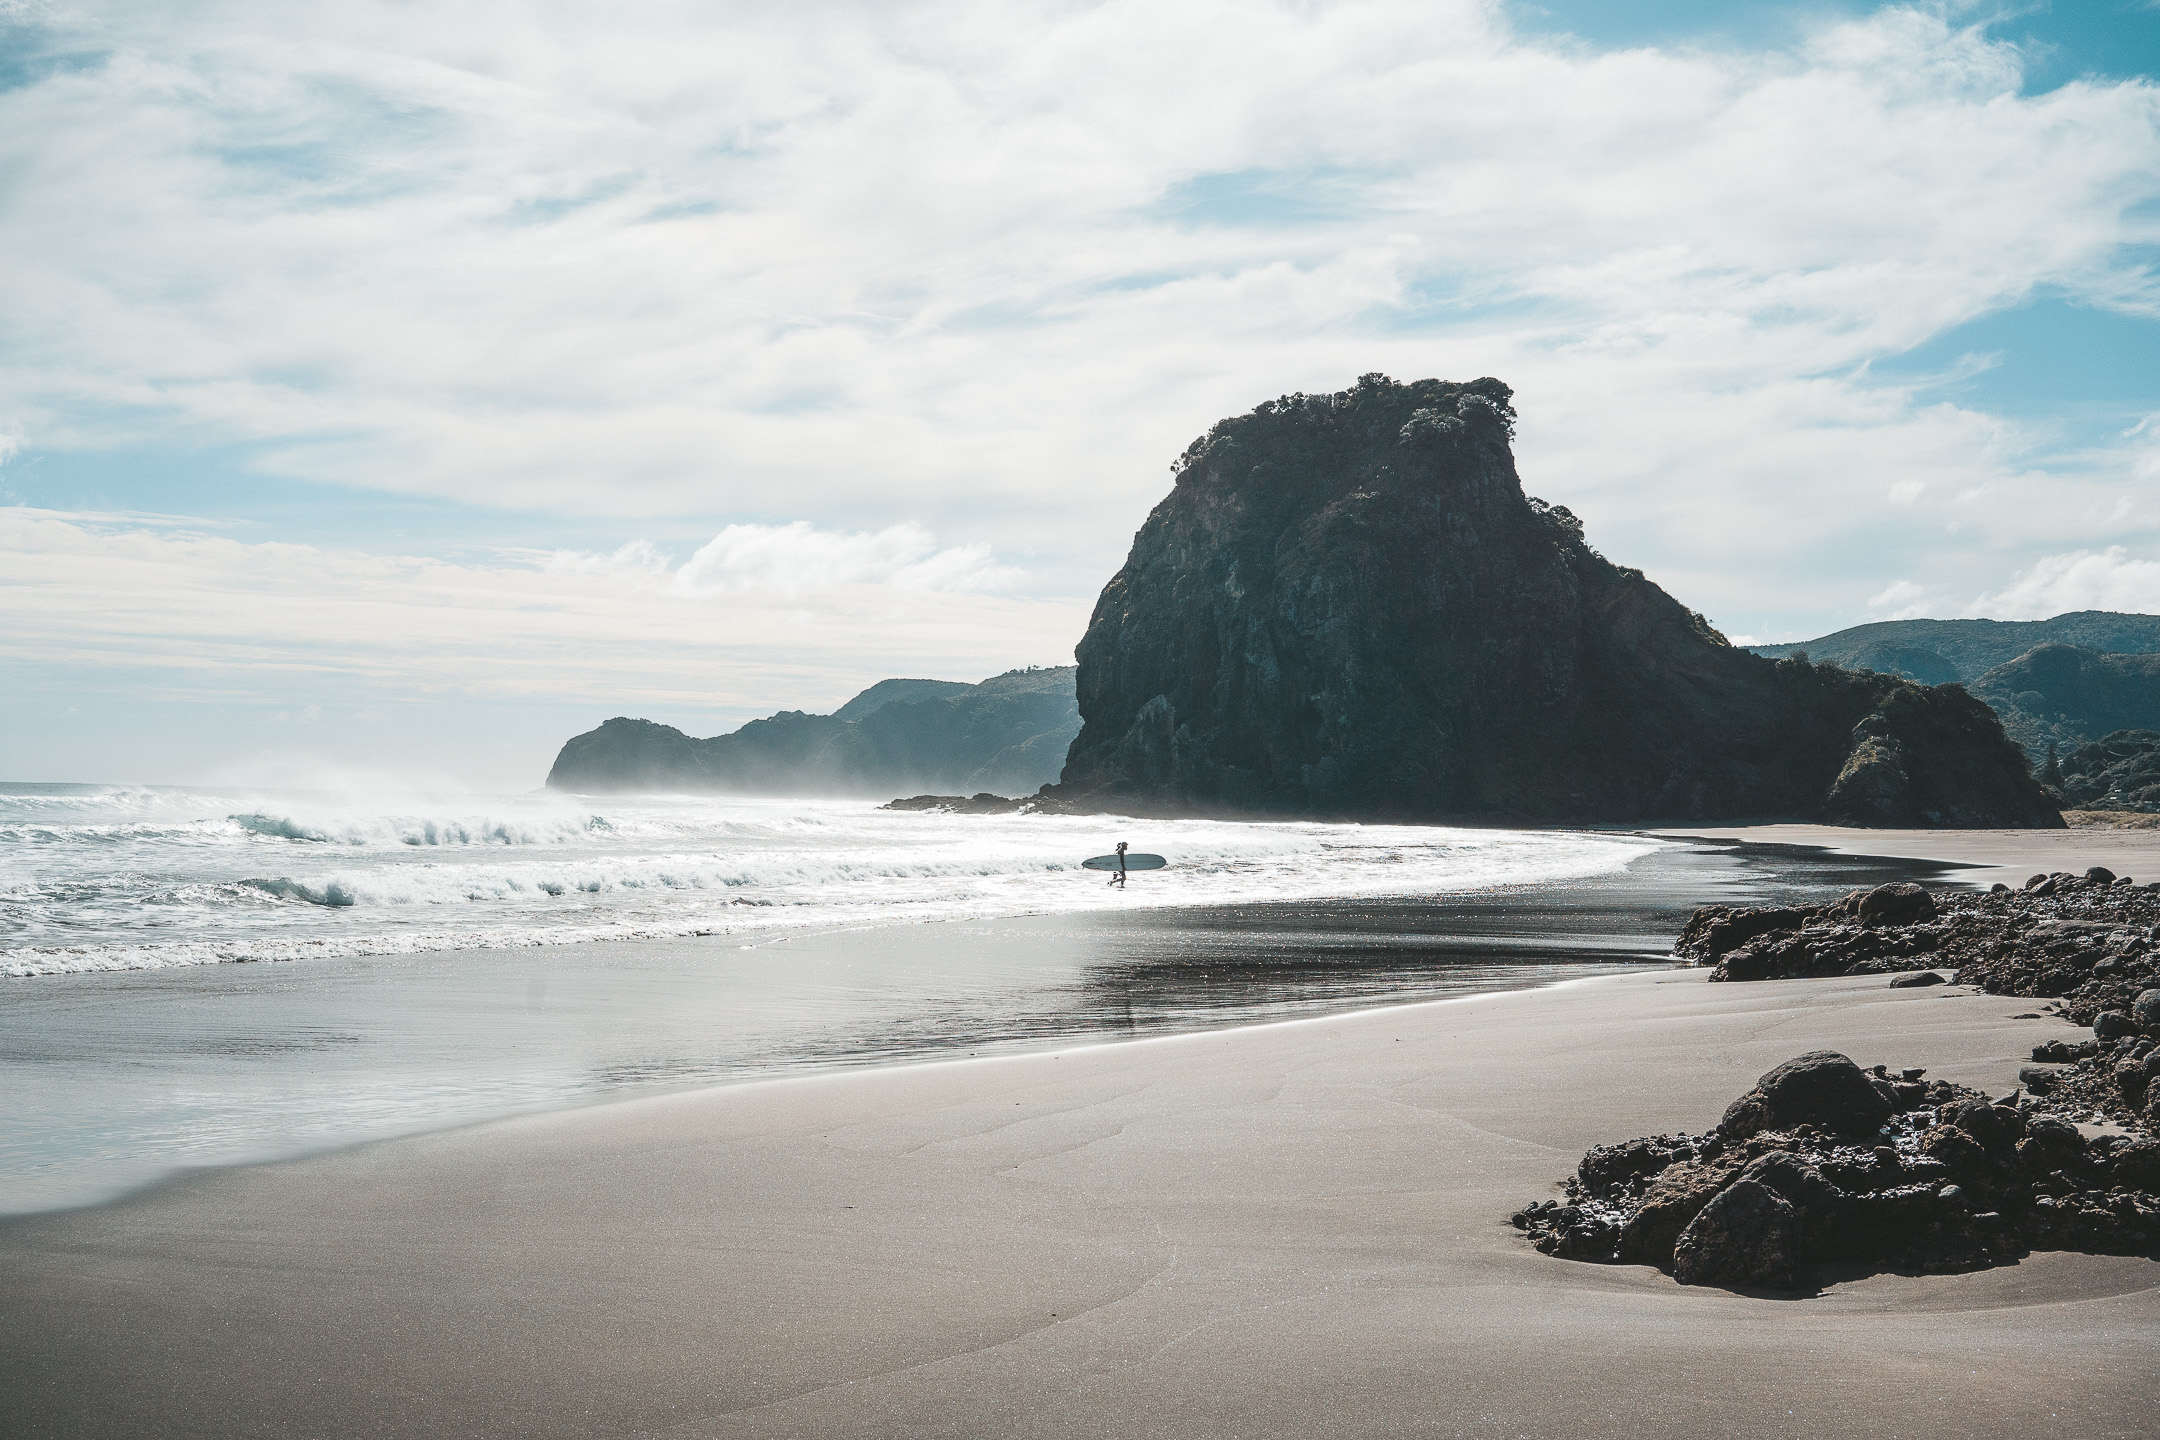 Roadtrips in New Zealand can be the experience of a lifetime. A little planning will go a long way to make your roadtrip to New Zealand the best experience. After many trips around this beautiful country, these are the do's and dont's that I would tell anyone planning a roadtrip around New Zealand.